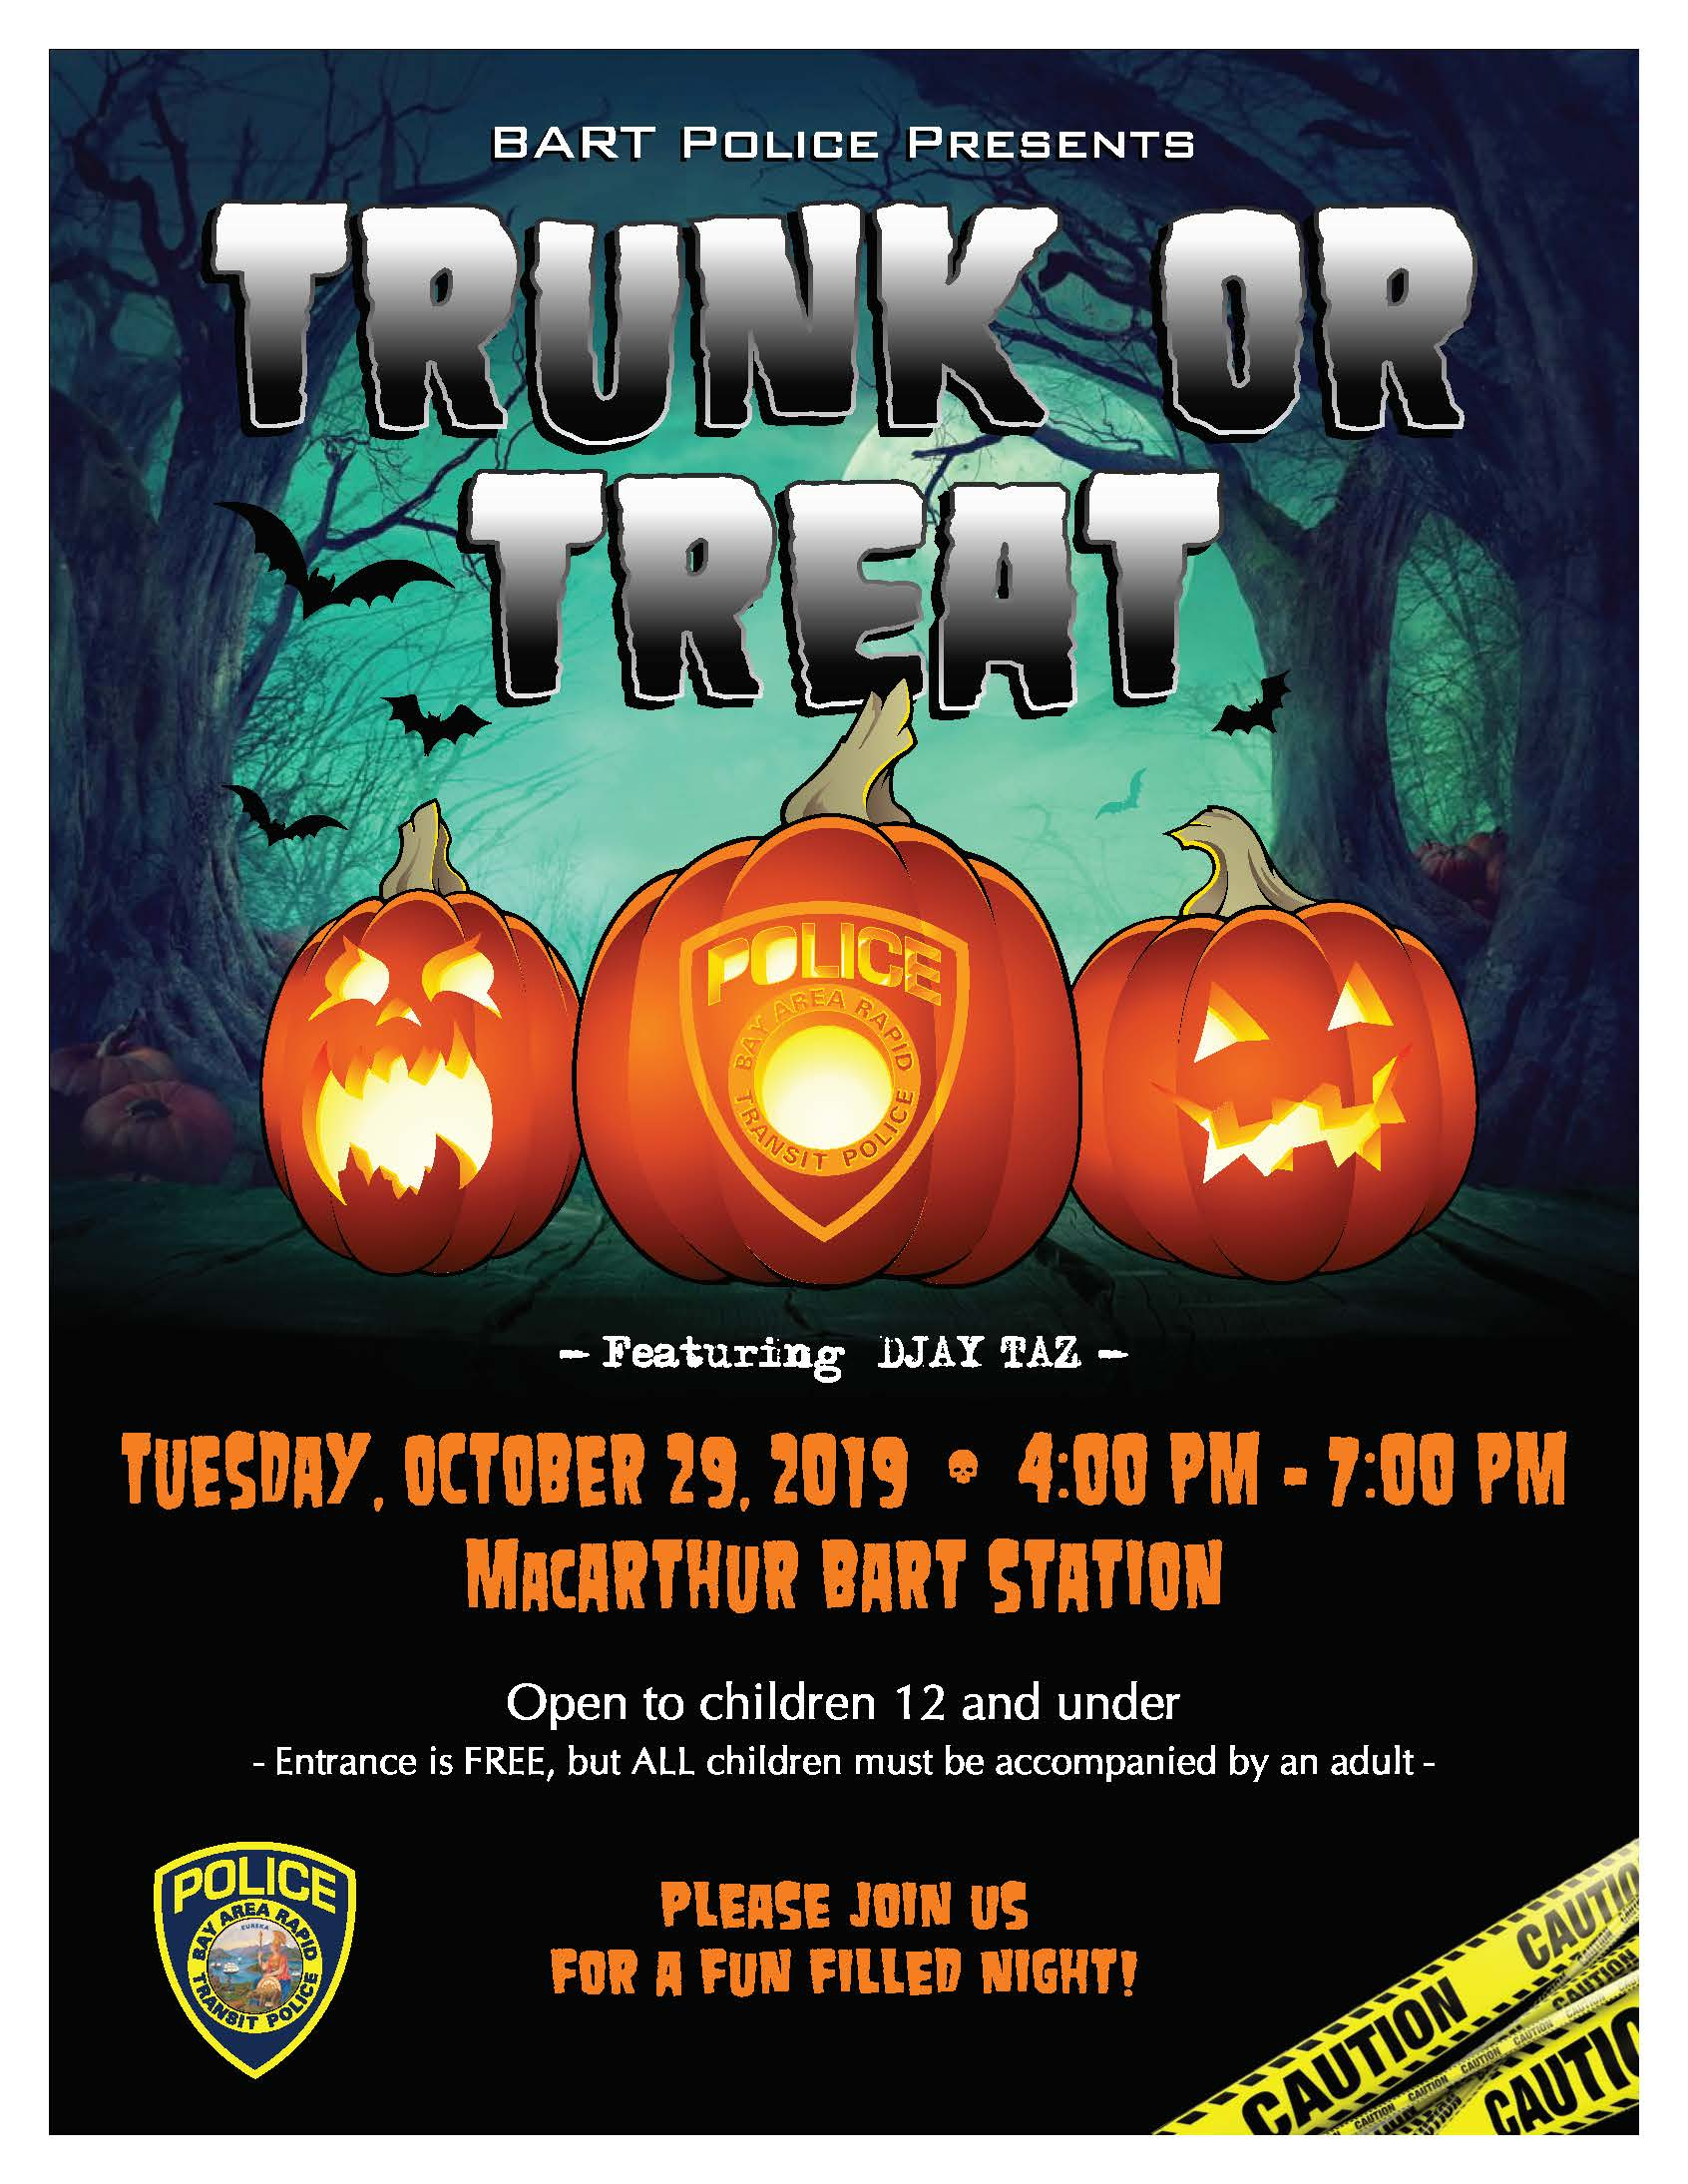 2019 BART PD Trunk or Treat flyer